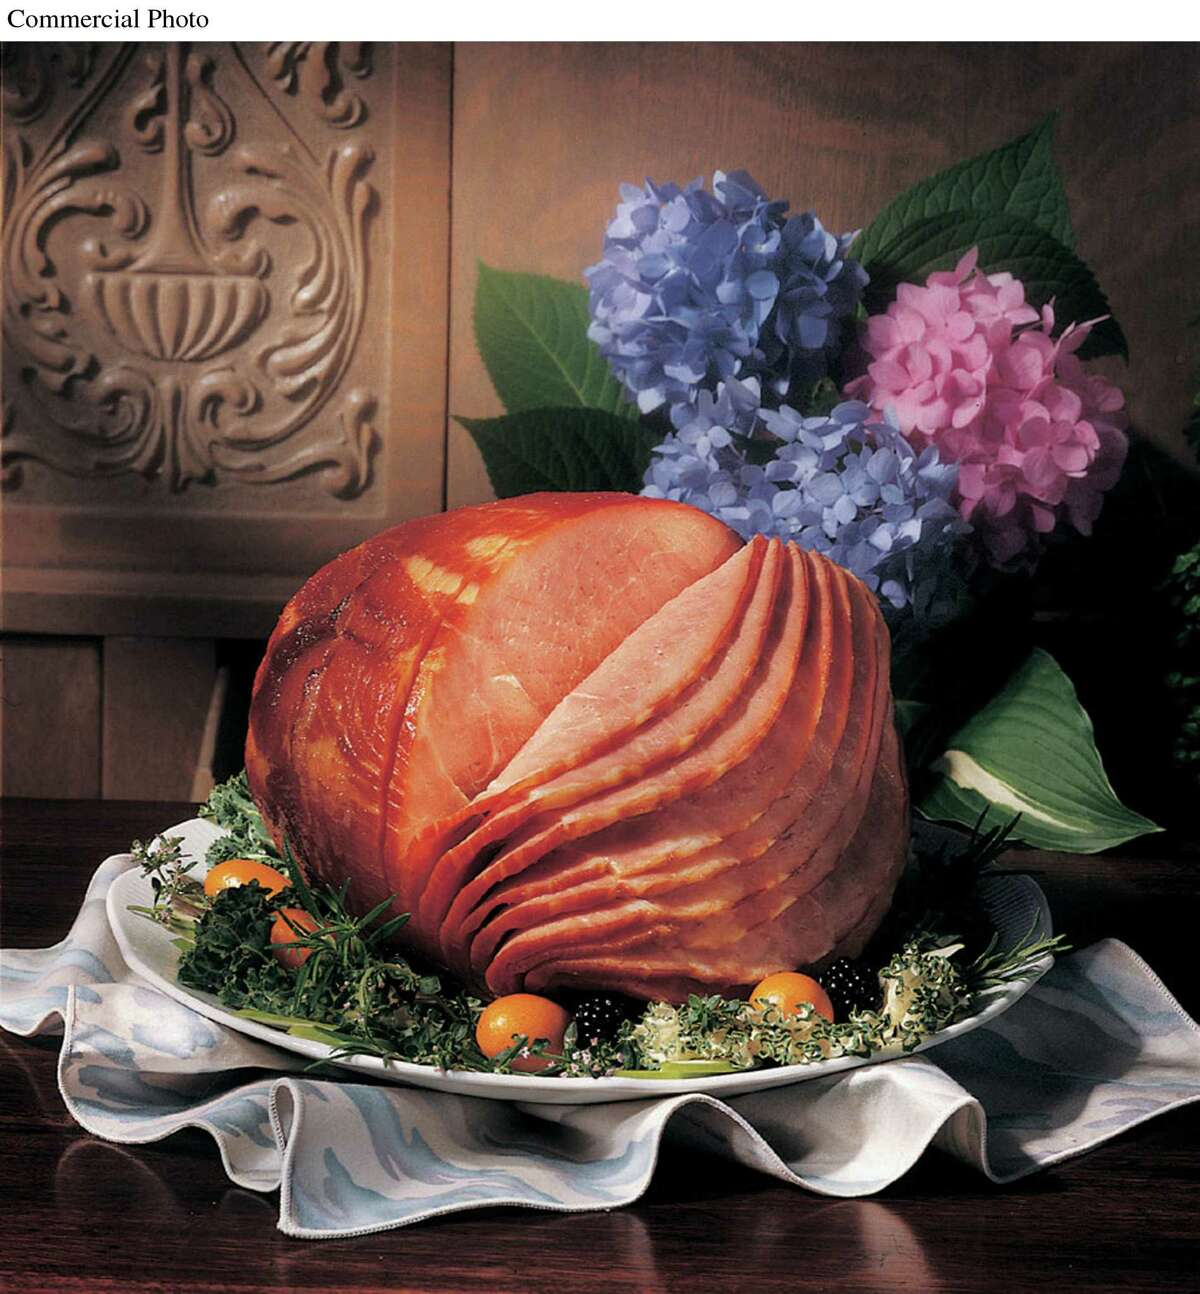 Spiral-sliced ham is a popular holiday meal for a crowd. (PRNewsFoto/Smithfield Foods)